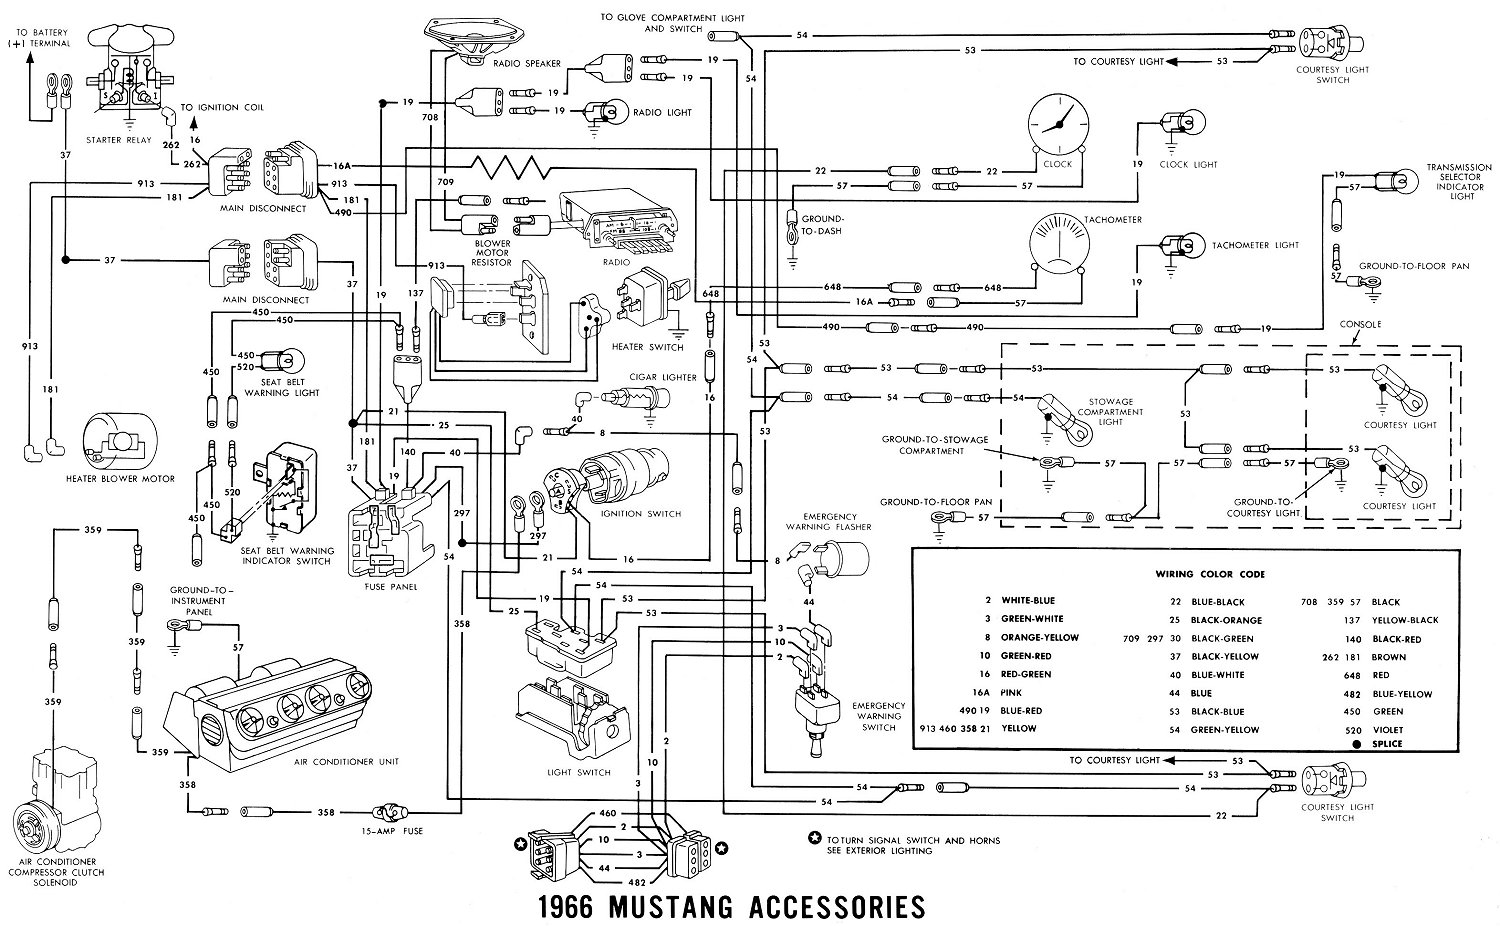 1966 ford mustang heater wiring diagram 1966 ford mustang radio wiring diagram 1966 mustang wiring diagrams - average joe restoration